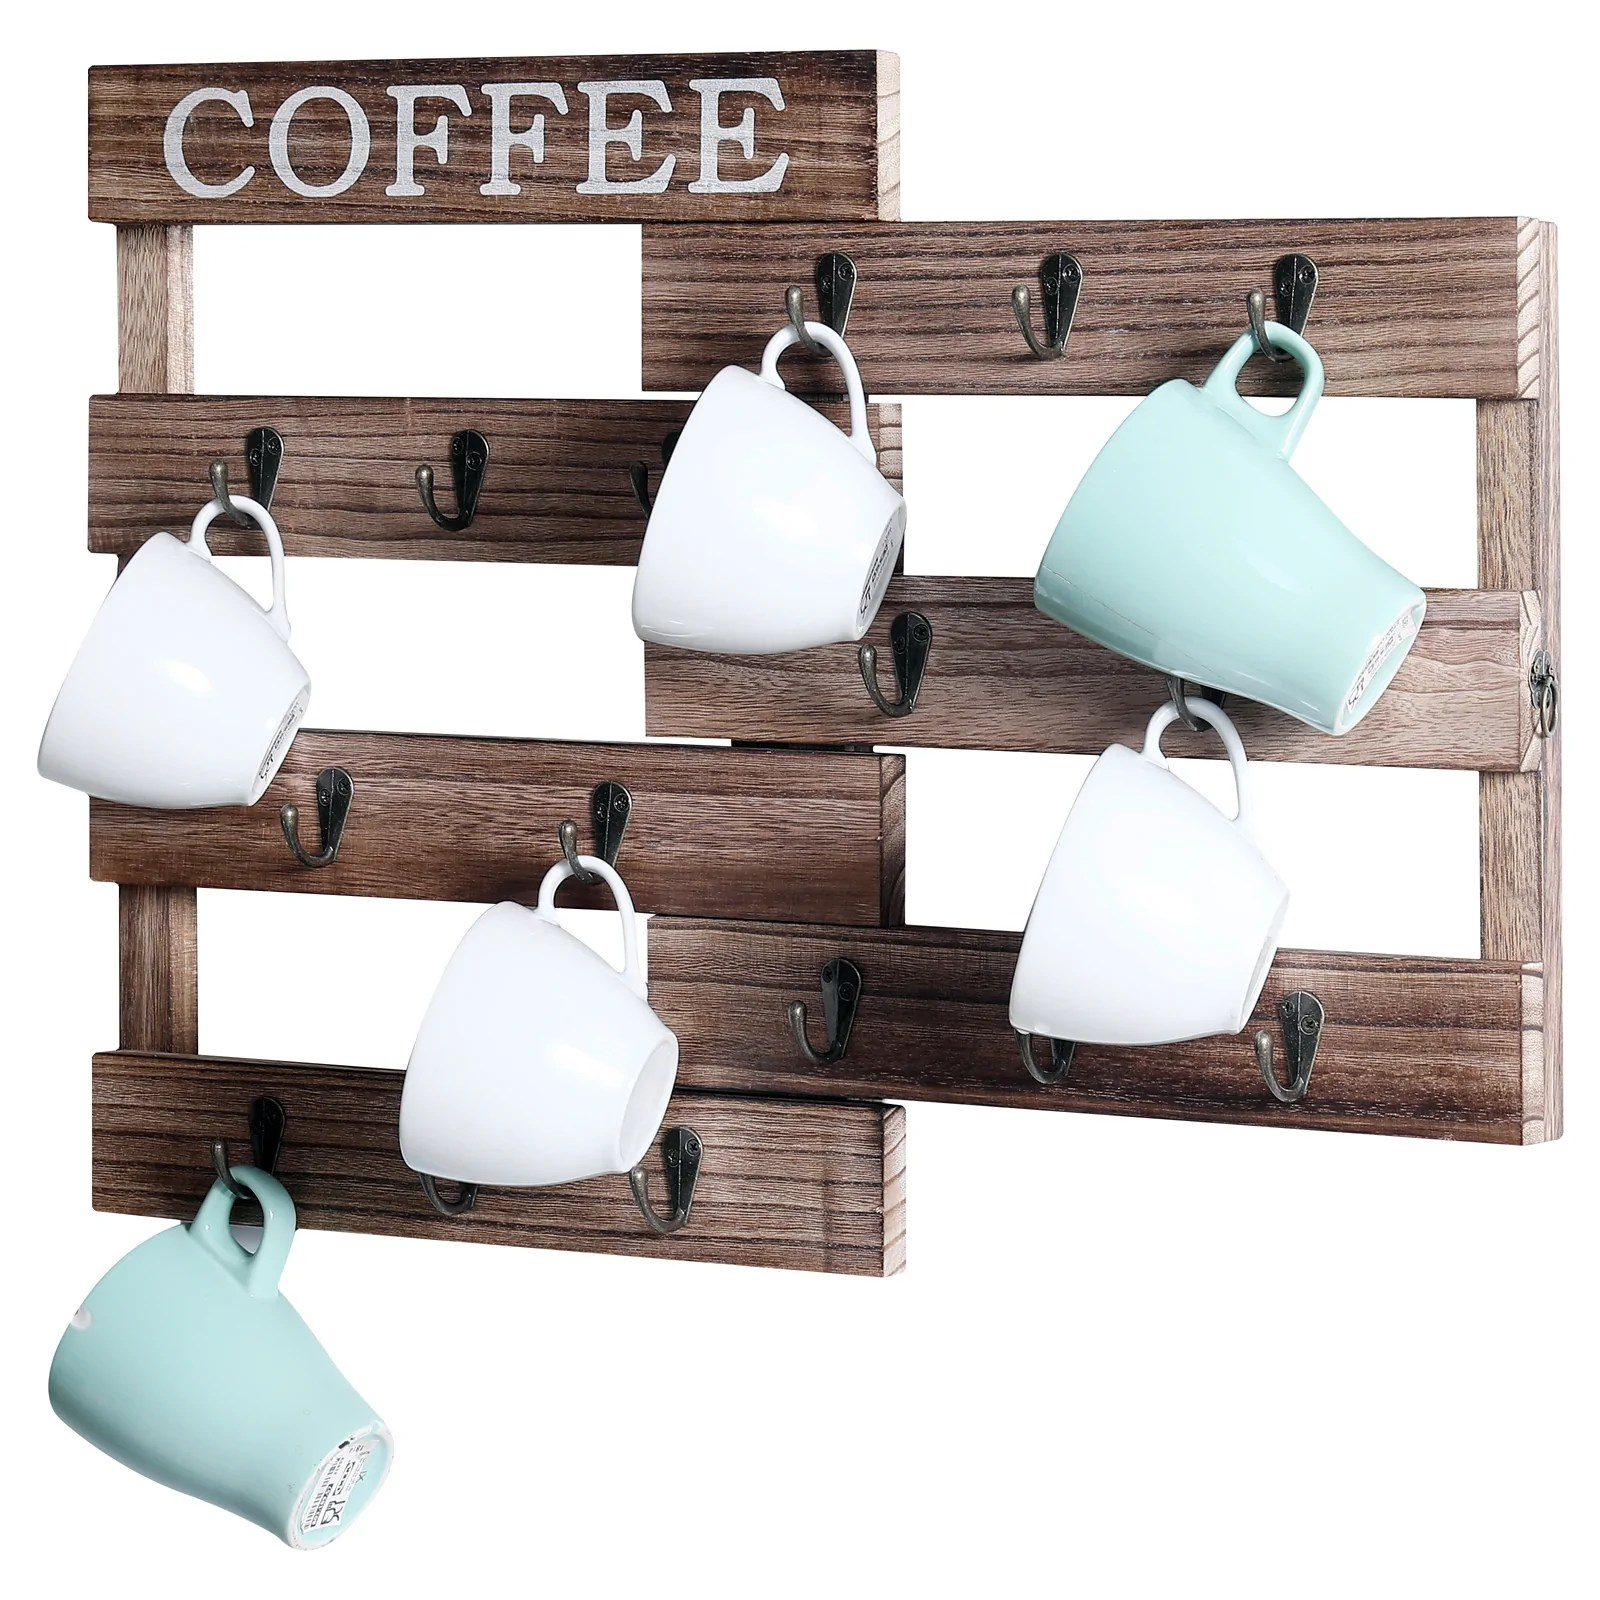 welland pull out coffee cup holder wall mounted mug rack for farmhouse coffee station decor two ways to display rustic wooden mug organizer for